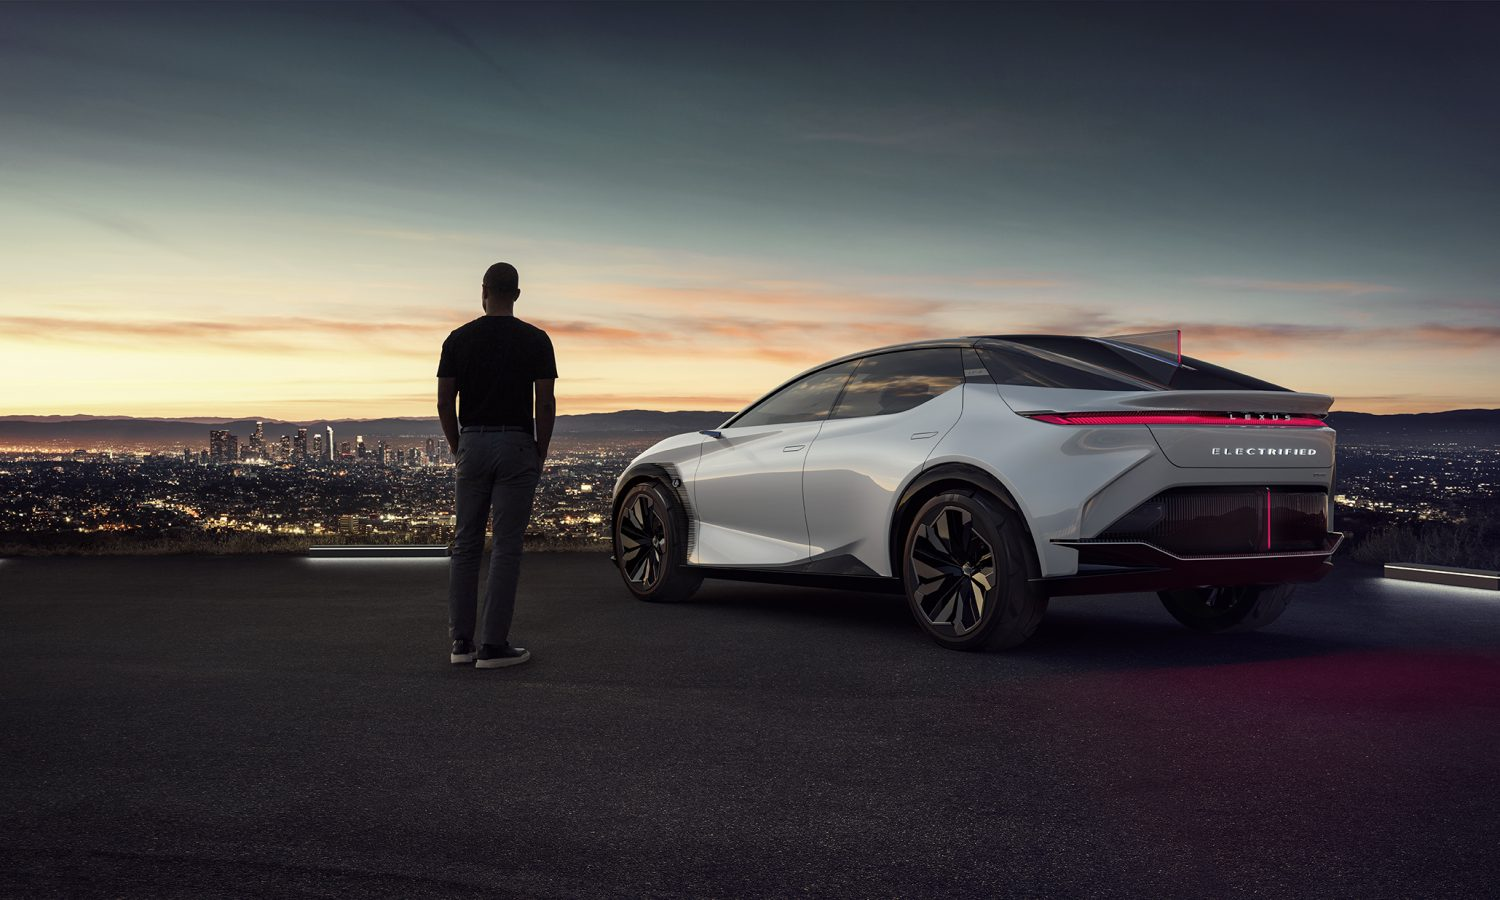 LEXUS ACCELERATES ITS ELECTRIFIED FUTURE WITH LF-Z ELECTRIFIED CONCEPT DEBUT